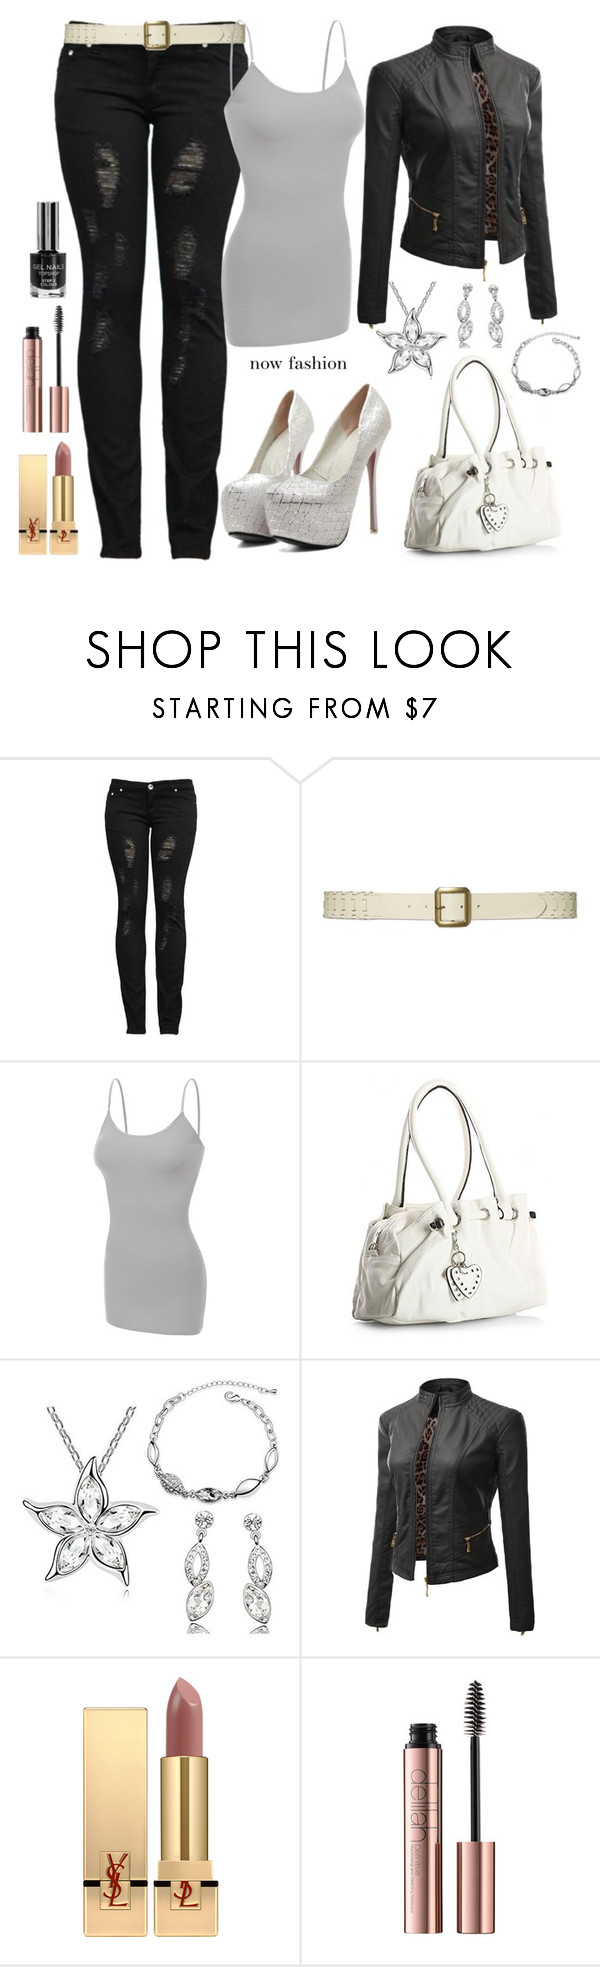 """MAHMMOD"" by mahmmodhafes ❤ liked on Polyvore featuring Lauren Ralph Lauren, Doublju and Yves Saint Laurent"